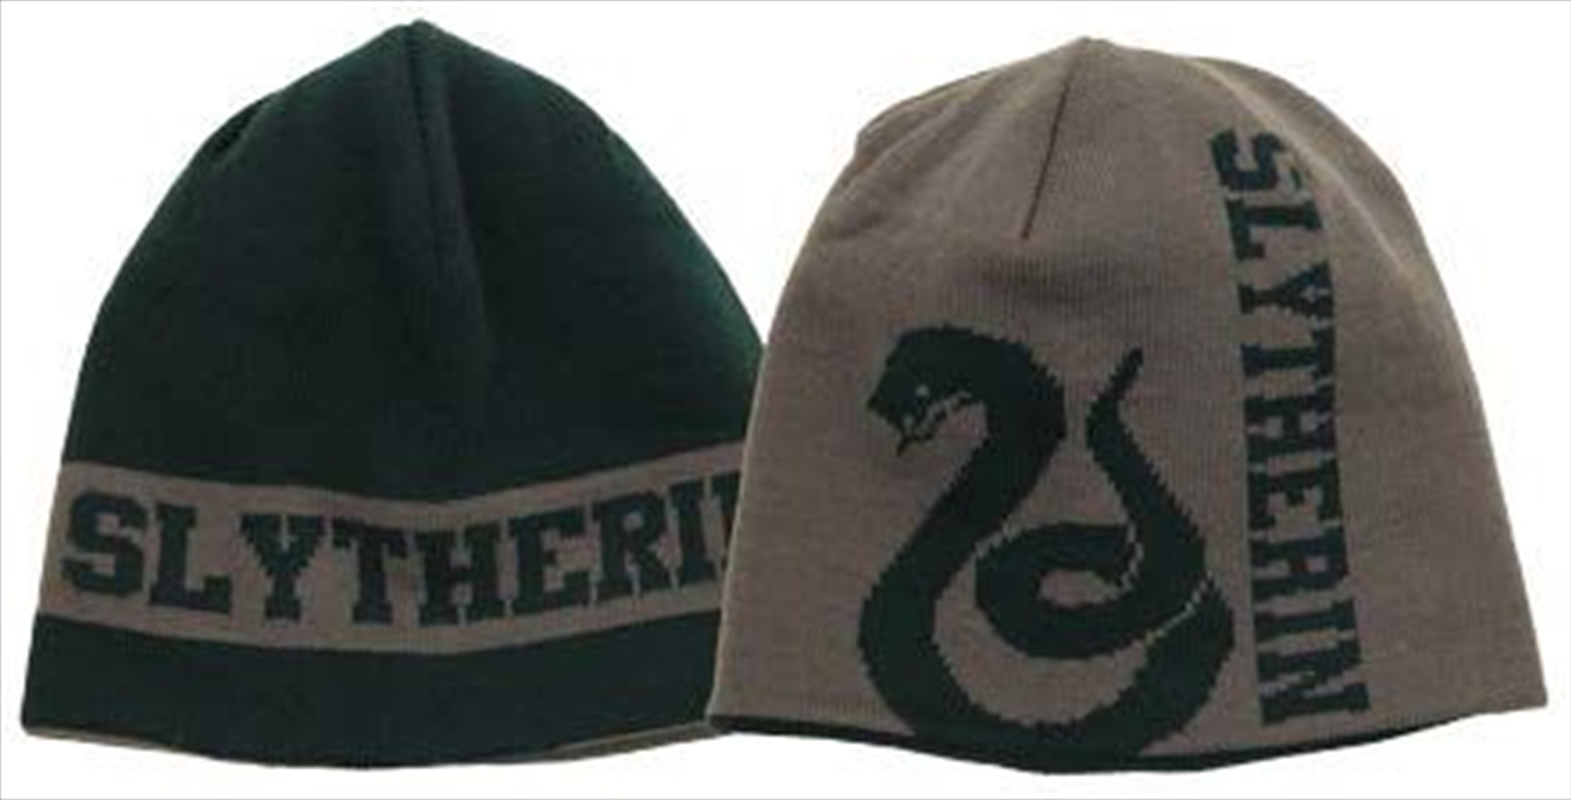 Slytherin Knit Beanie | Merchandise